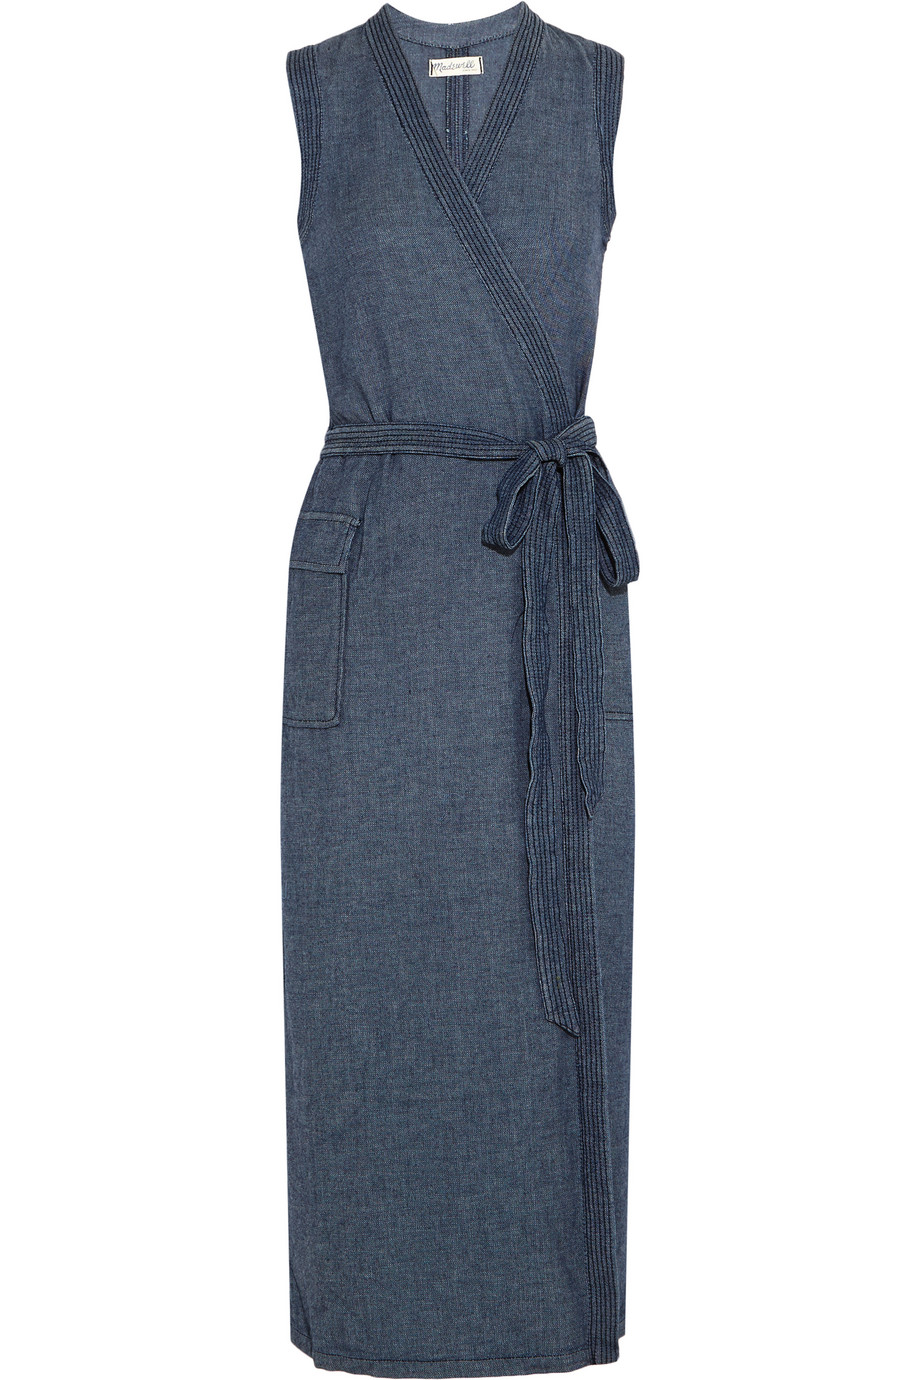 Madewell Denim Wrap Dress, Size: S